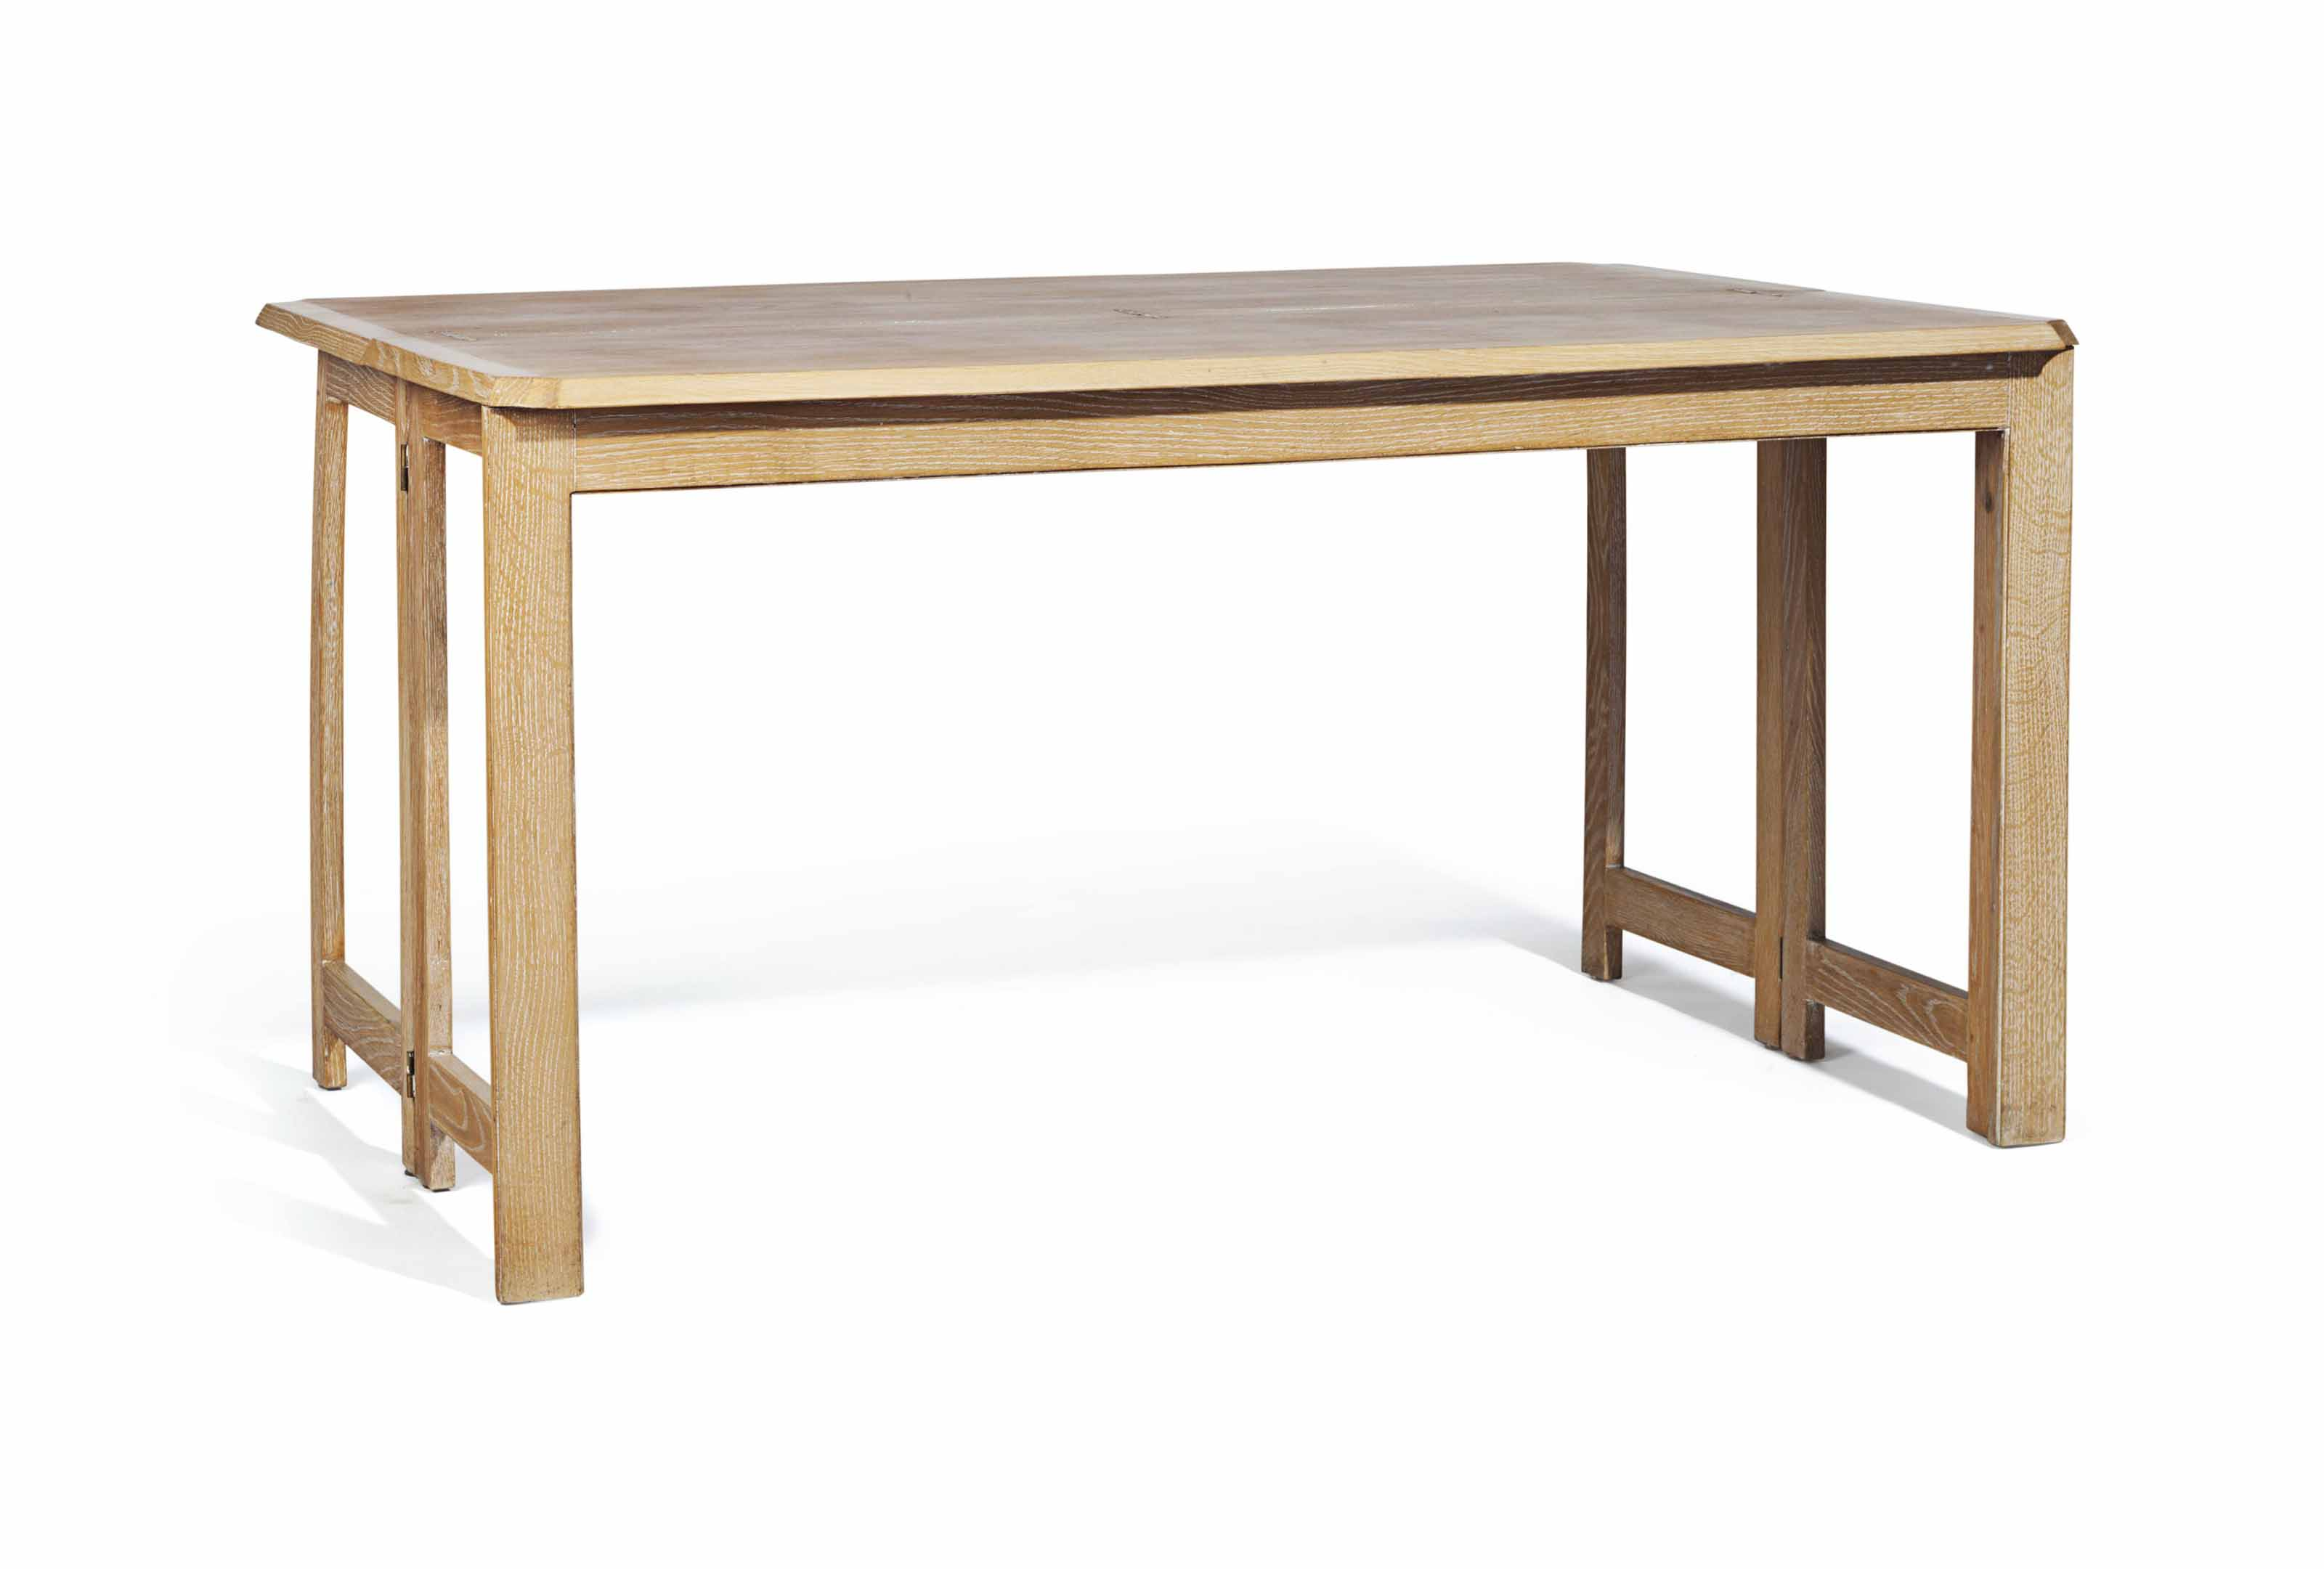 A FRENCH LIMED OAK FOLDING CONSOLE TABLE